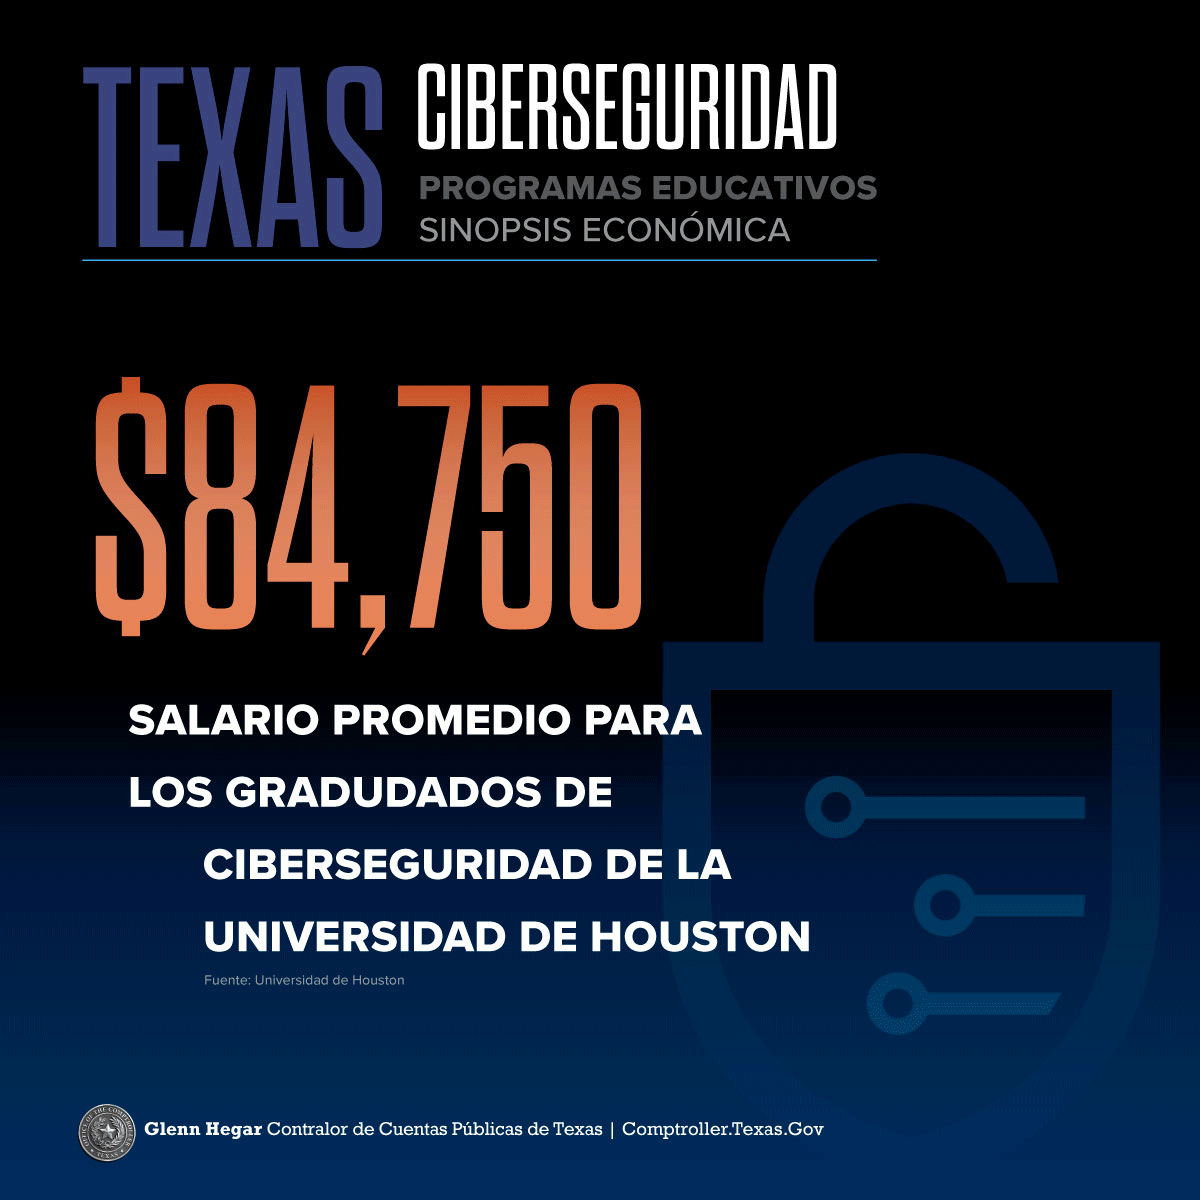 Texas Cybersecurity Educational Programs Economic Snapshot $70,000 average starting salary for Texas A&M cybersecurity graduates. Source: Texas A&M University